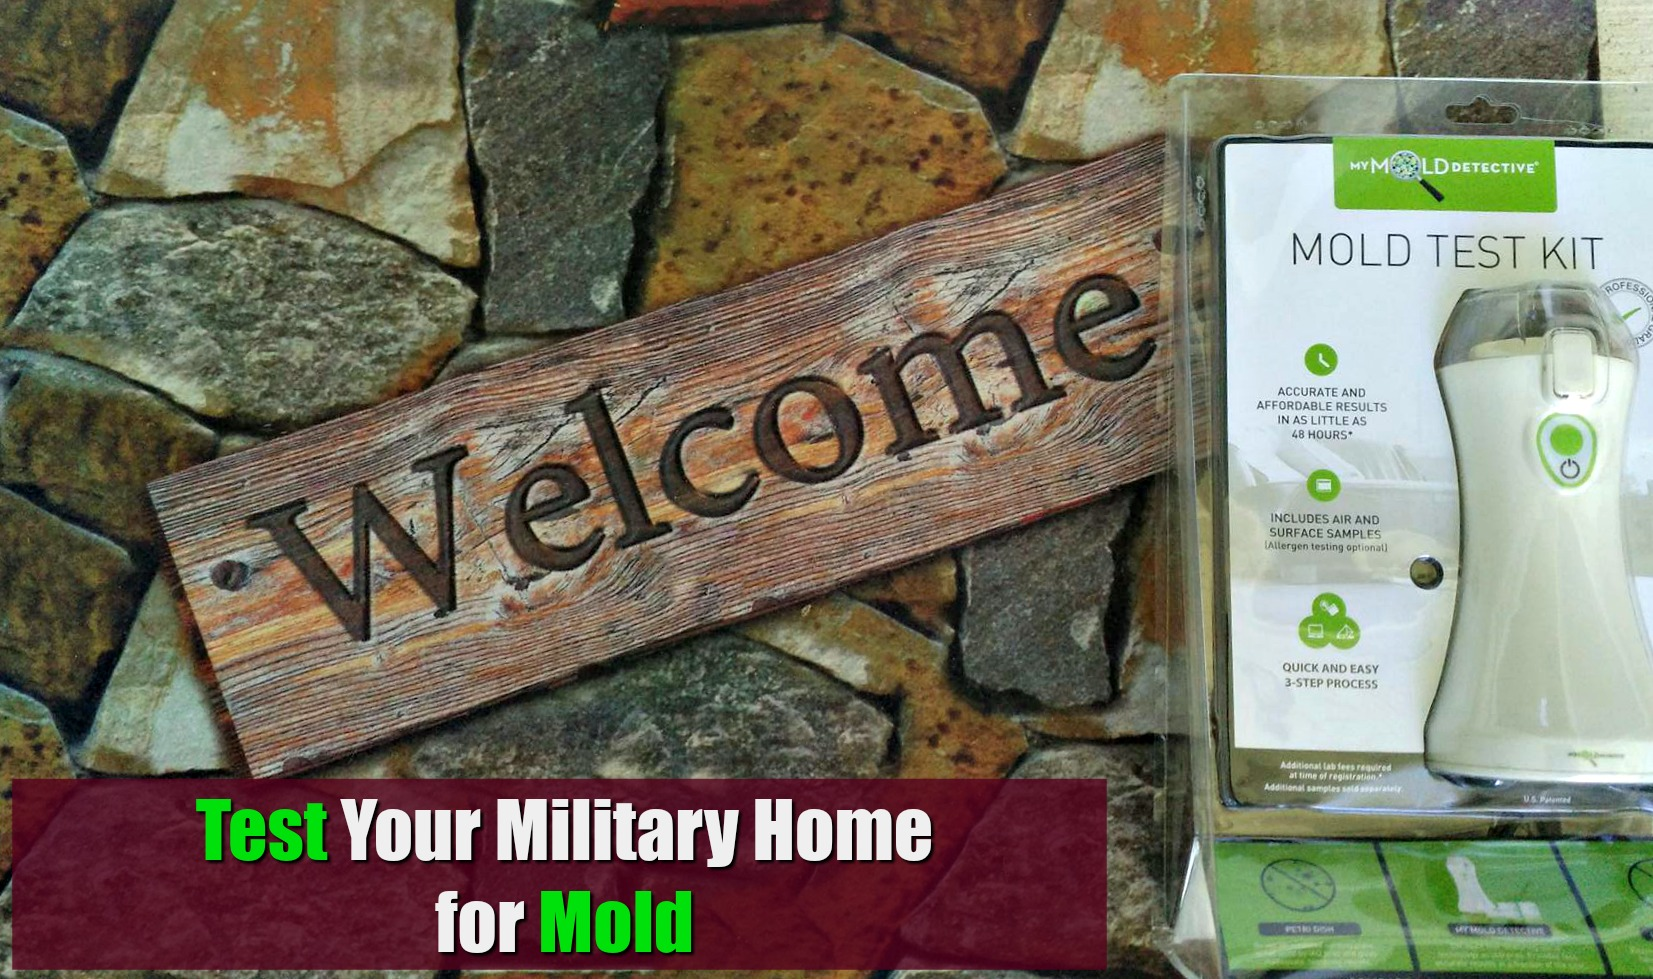 Test Your Military Home for Mold